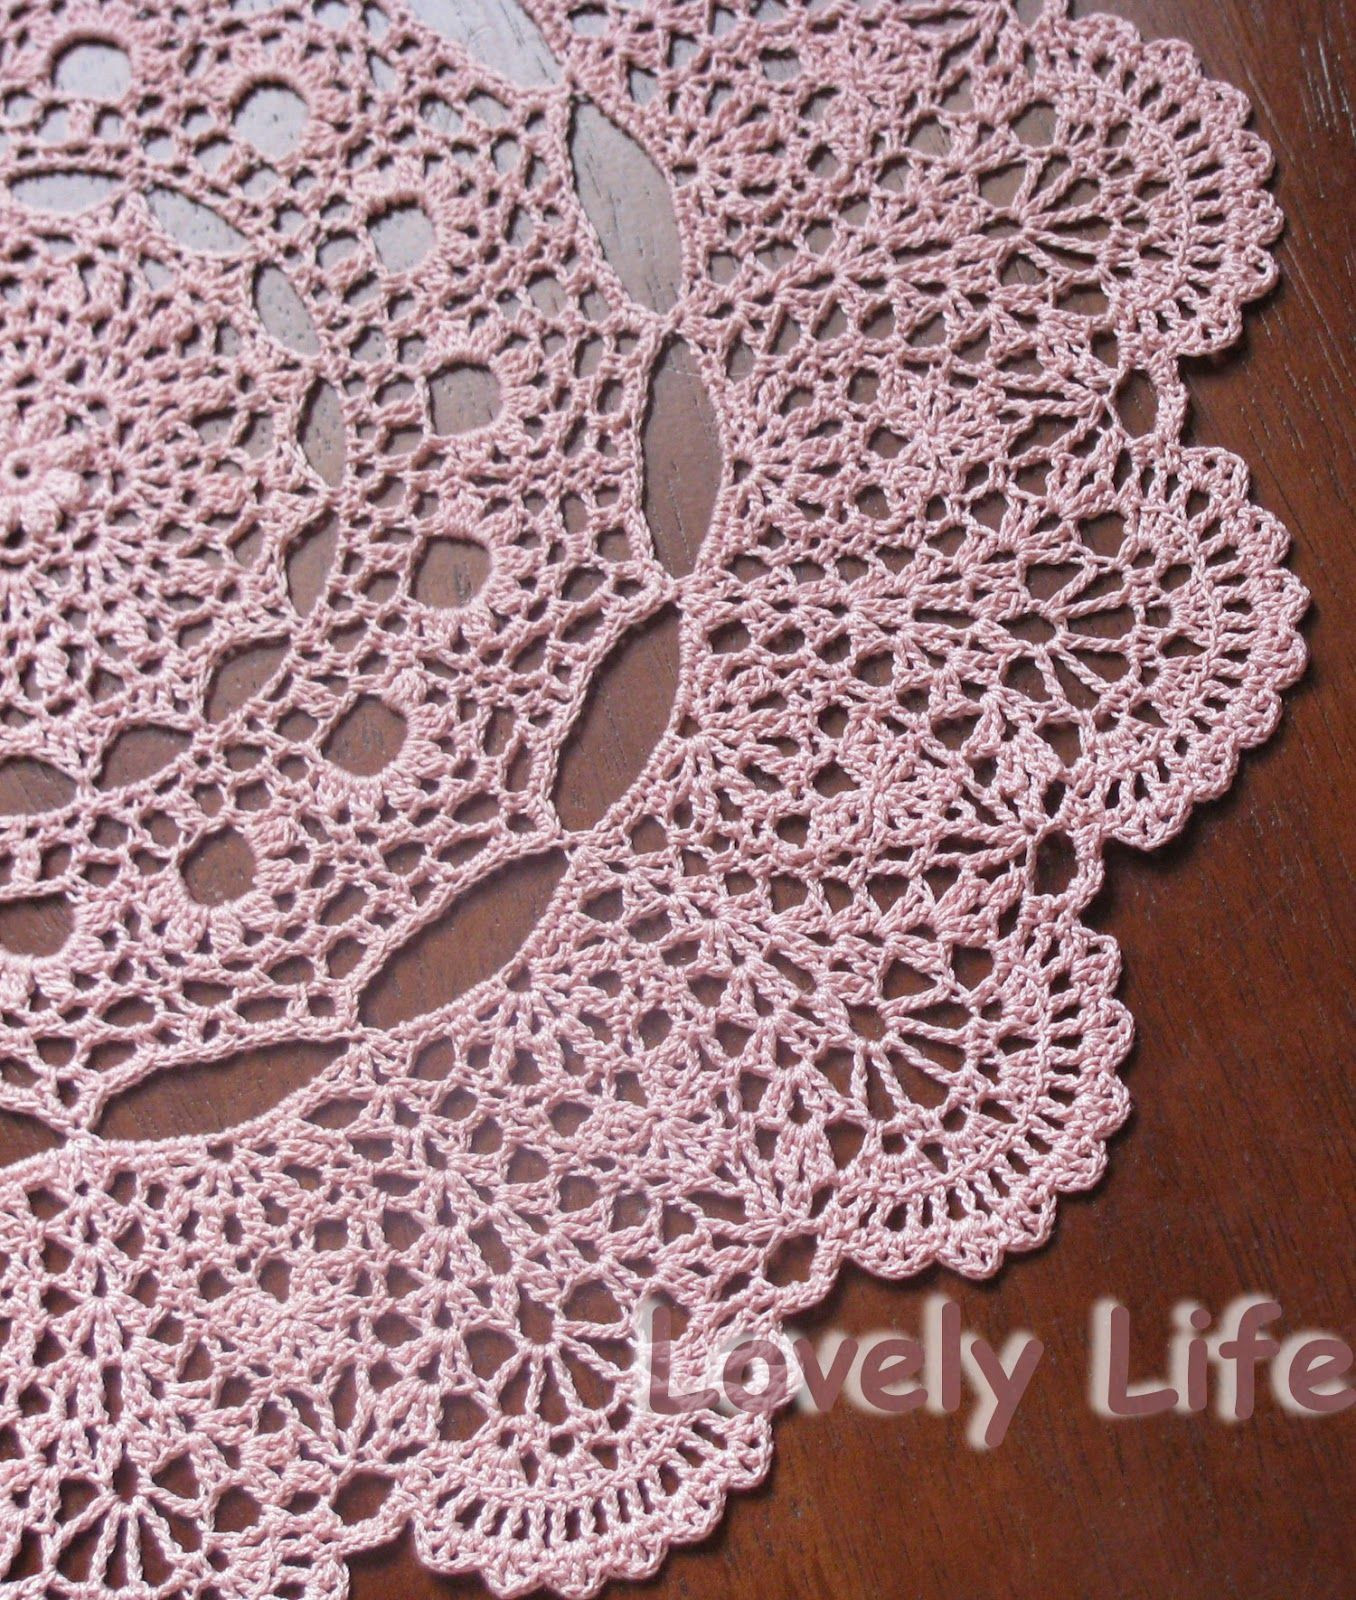 Free Crochet Thread Patterns Beautiful Free Printable Crochet Doily Patterns Of Awesome 43 Photos Free Crochet Thread Patterns